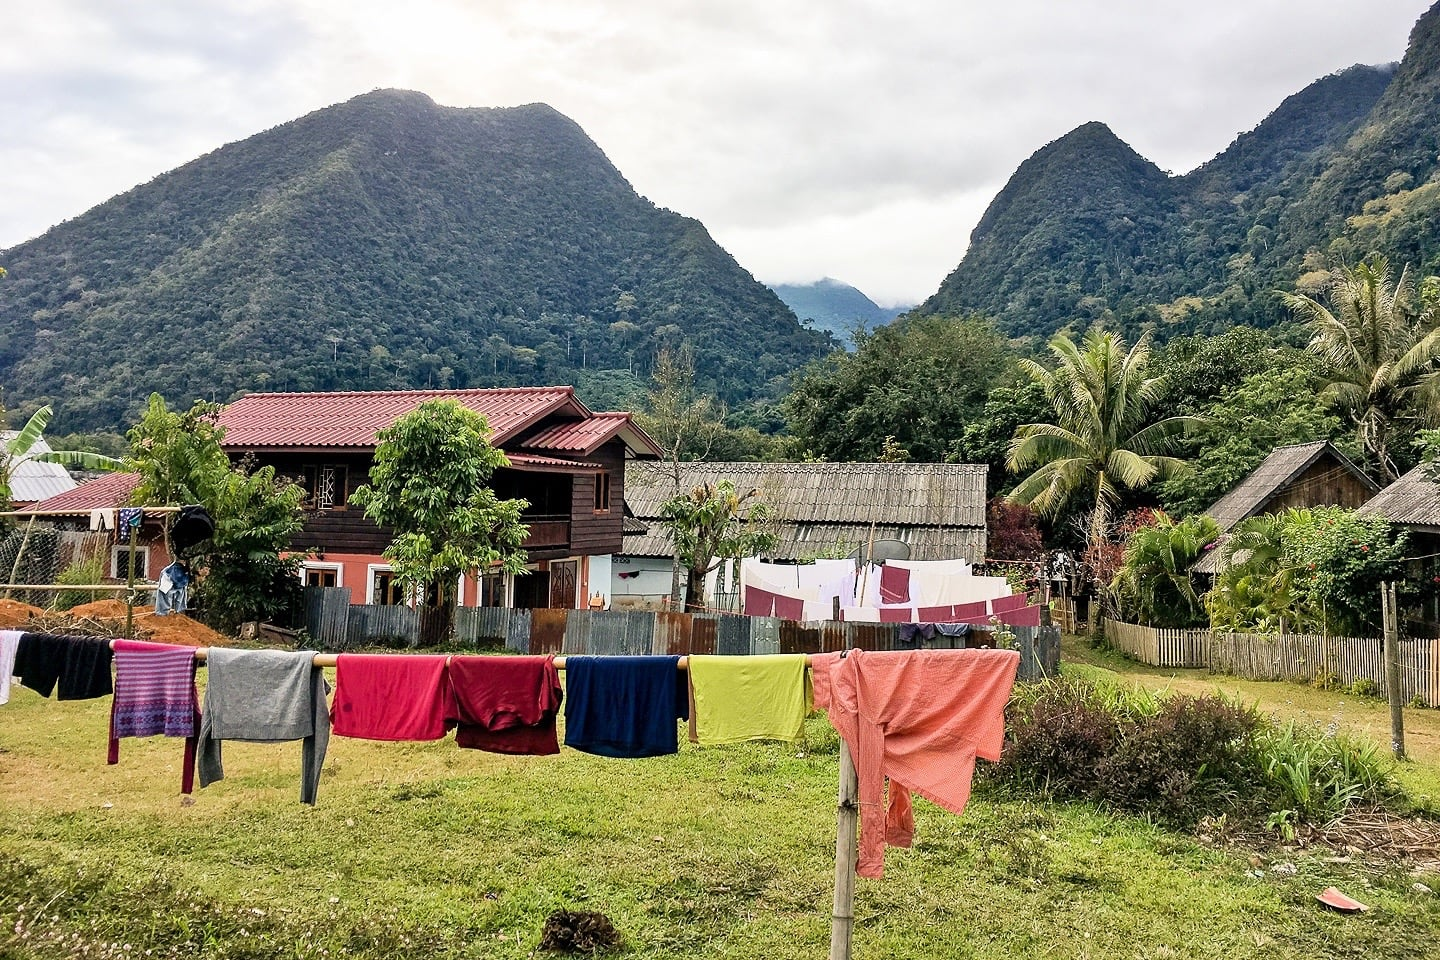 clothes drying in the sun in Muang Ngoi Neua Laos